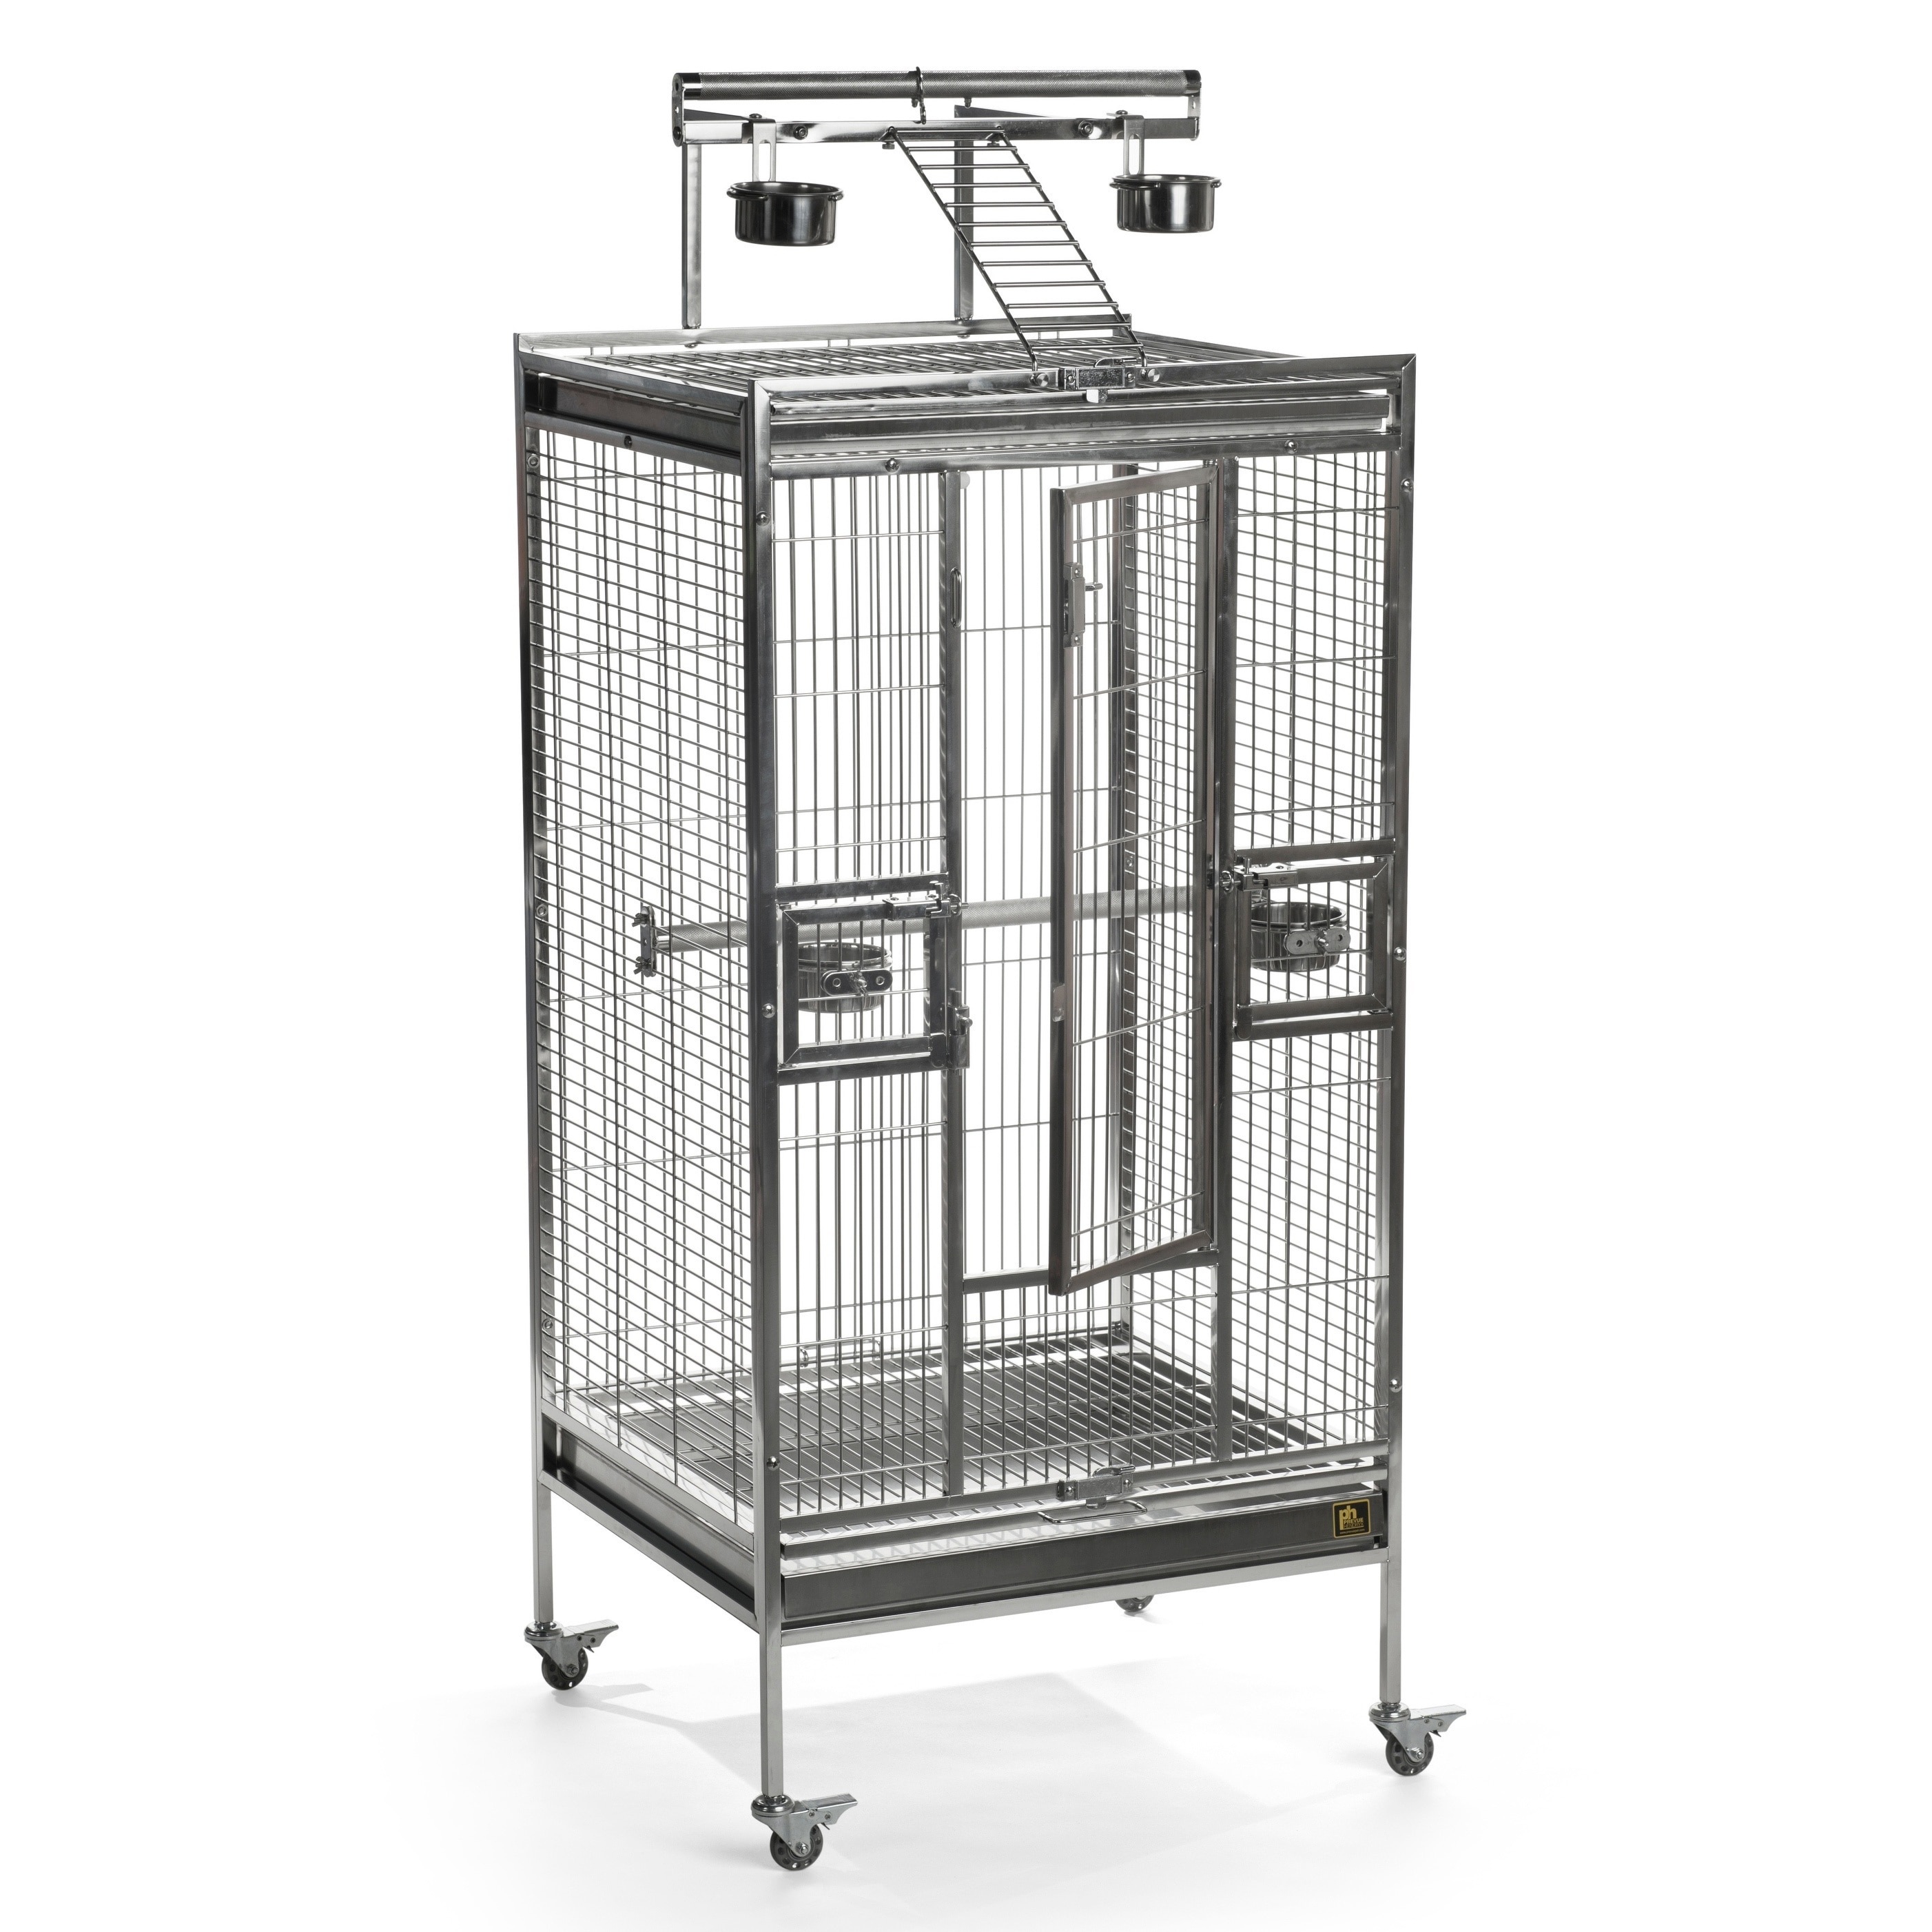 Prevue Pet Products Stainless Steel Playtop Bird Cage 3453 (Amazon)